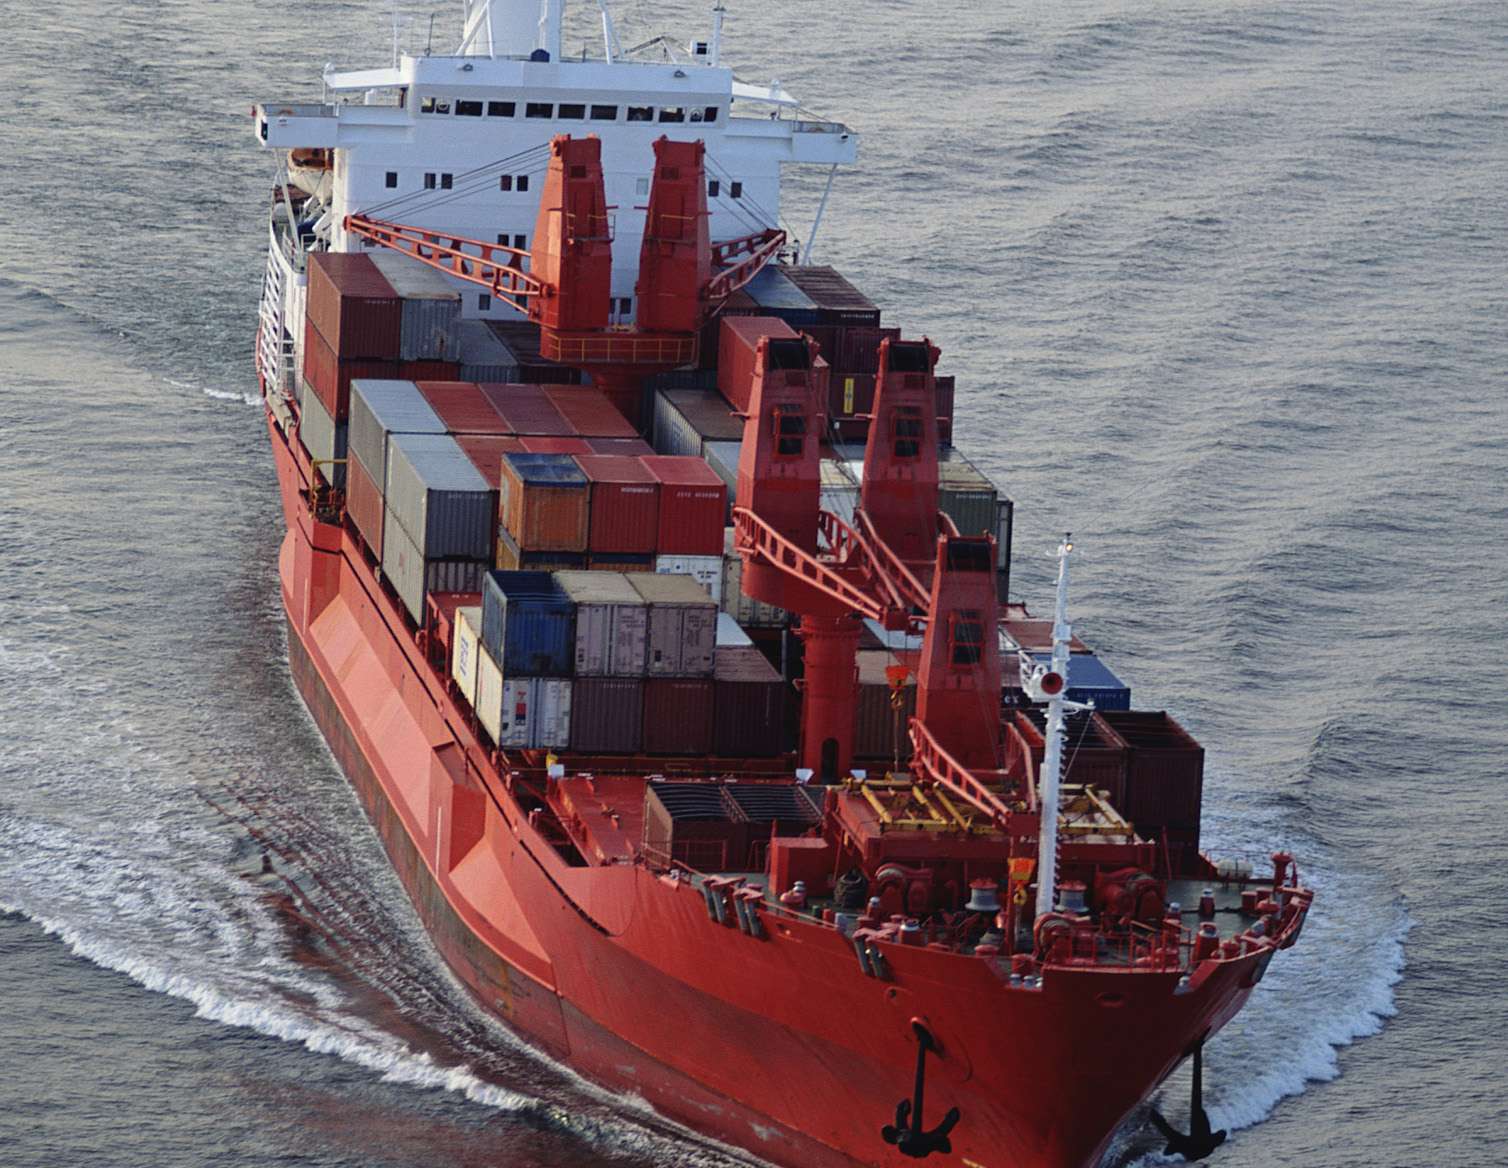 ship red 8